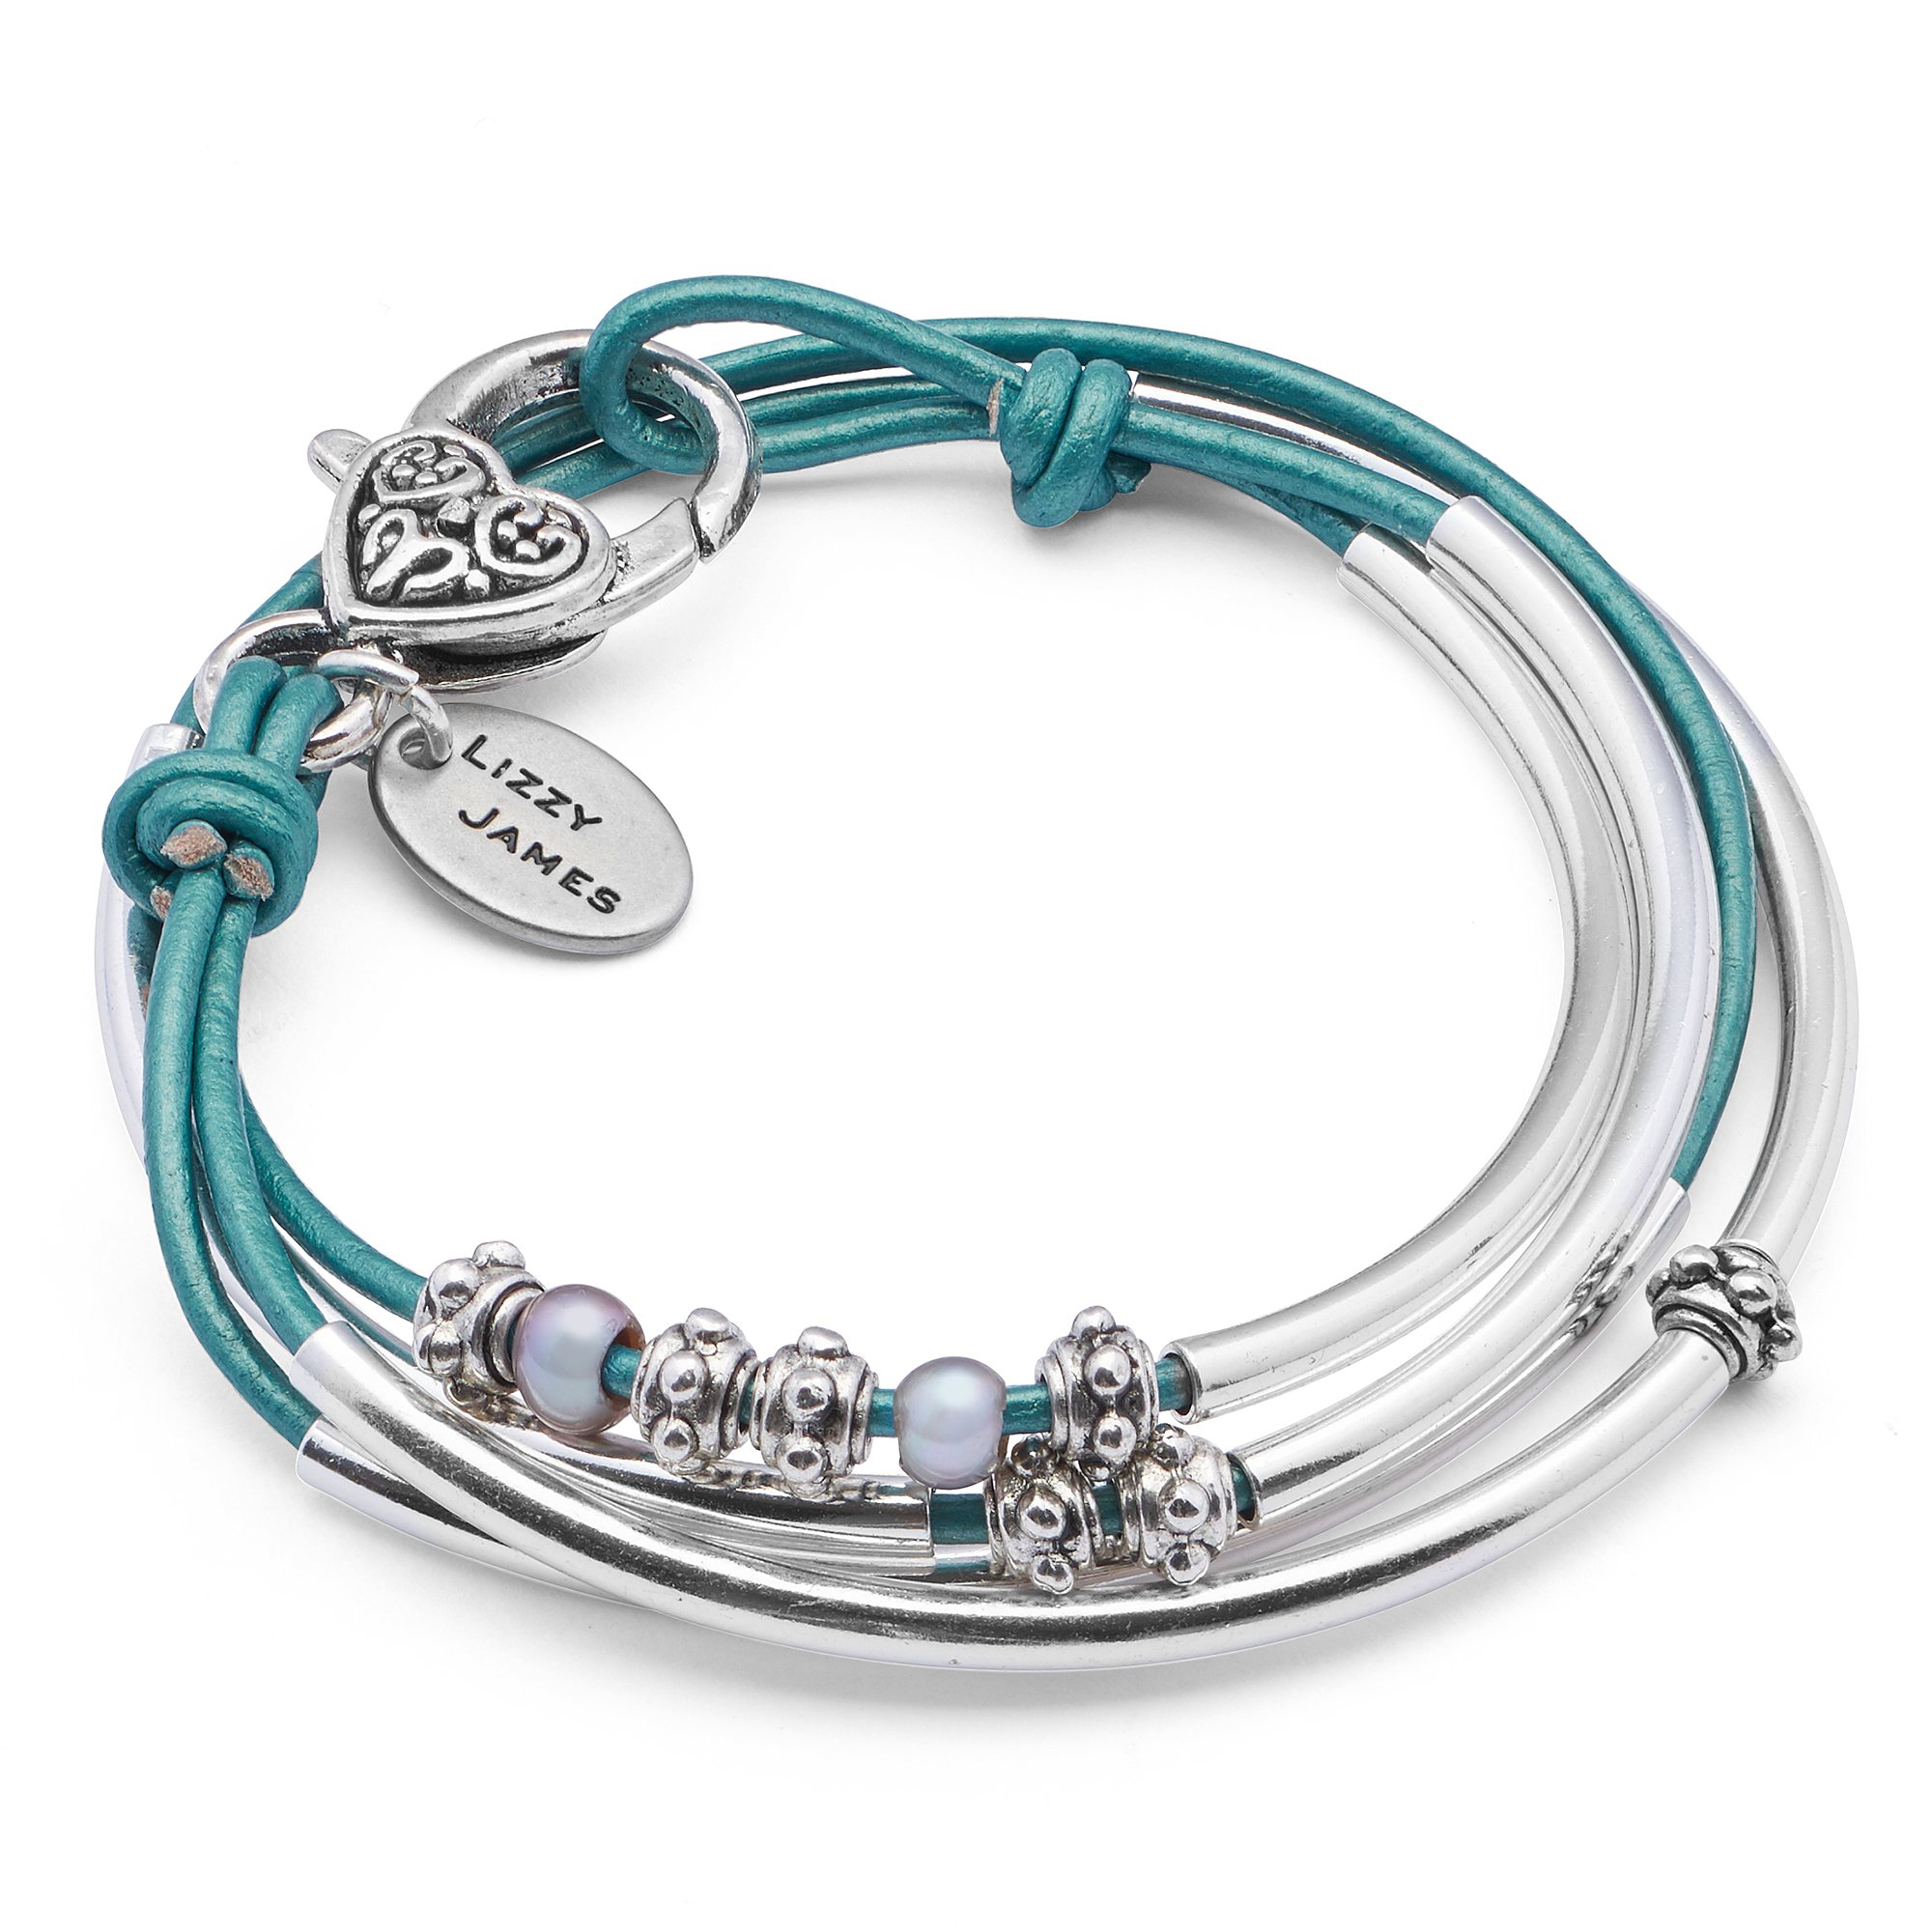 Lizzy James Mini Charmer Wrap Bracelet in Silverplate and Metallic Teal Leather with Small Freshwater Pearls (MEDIUM)